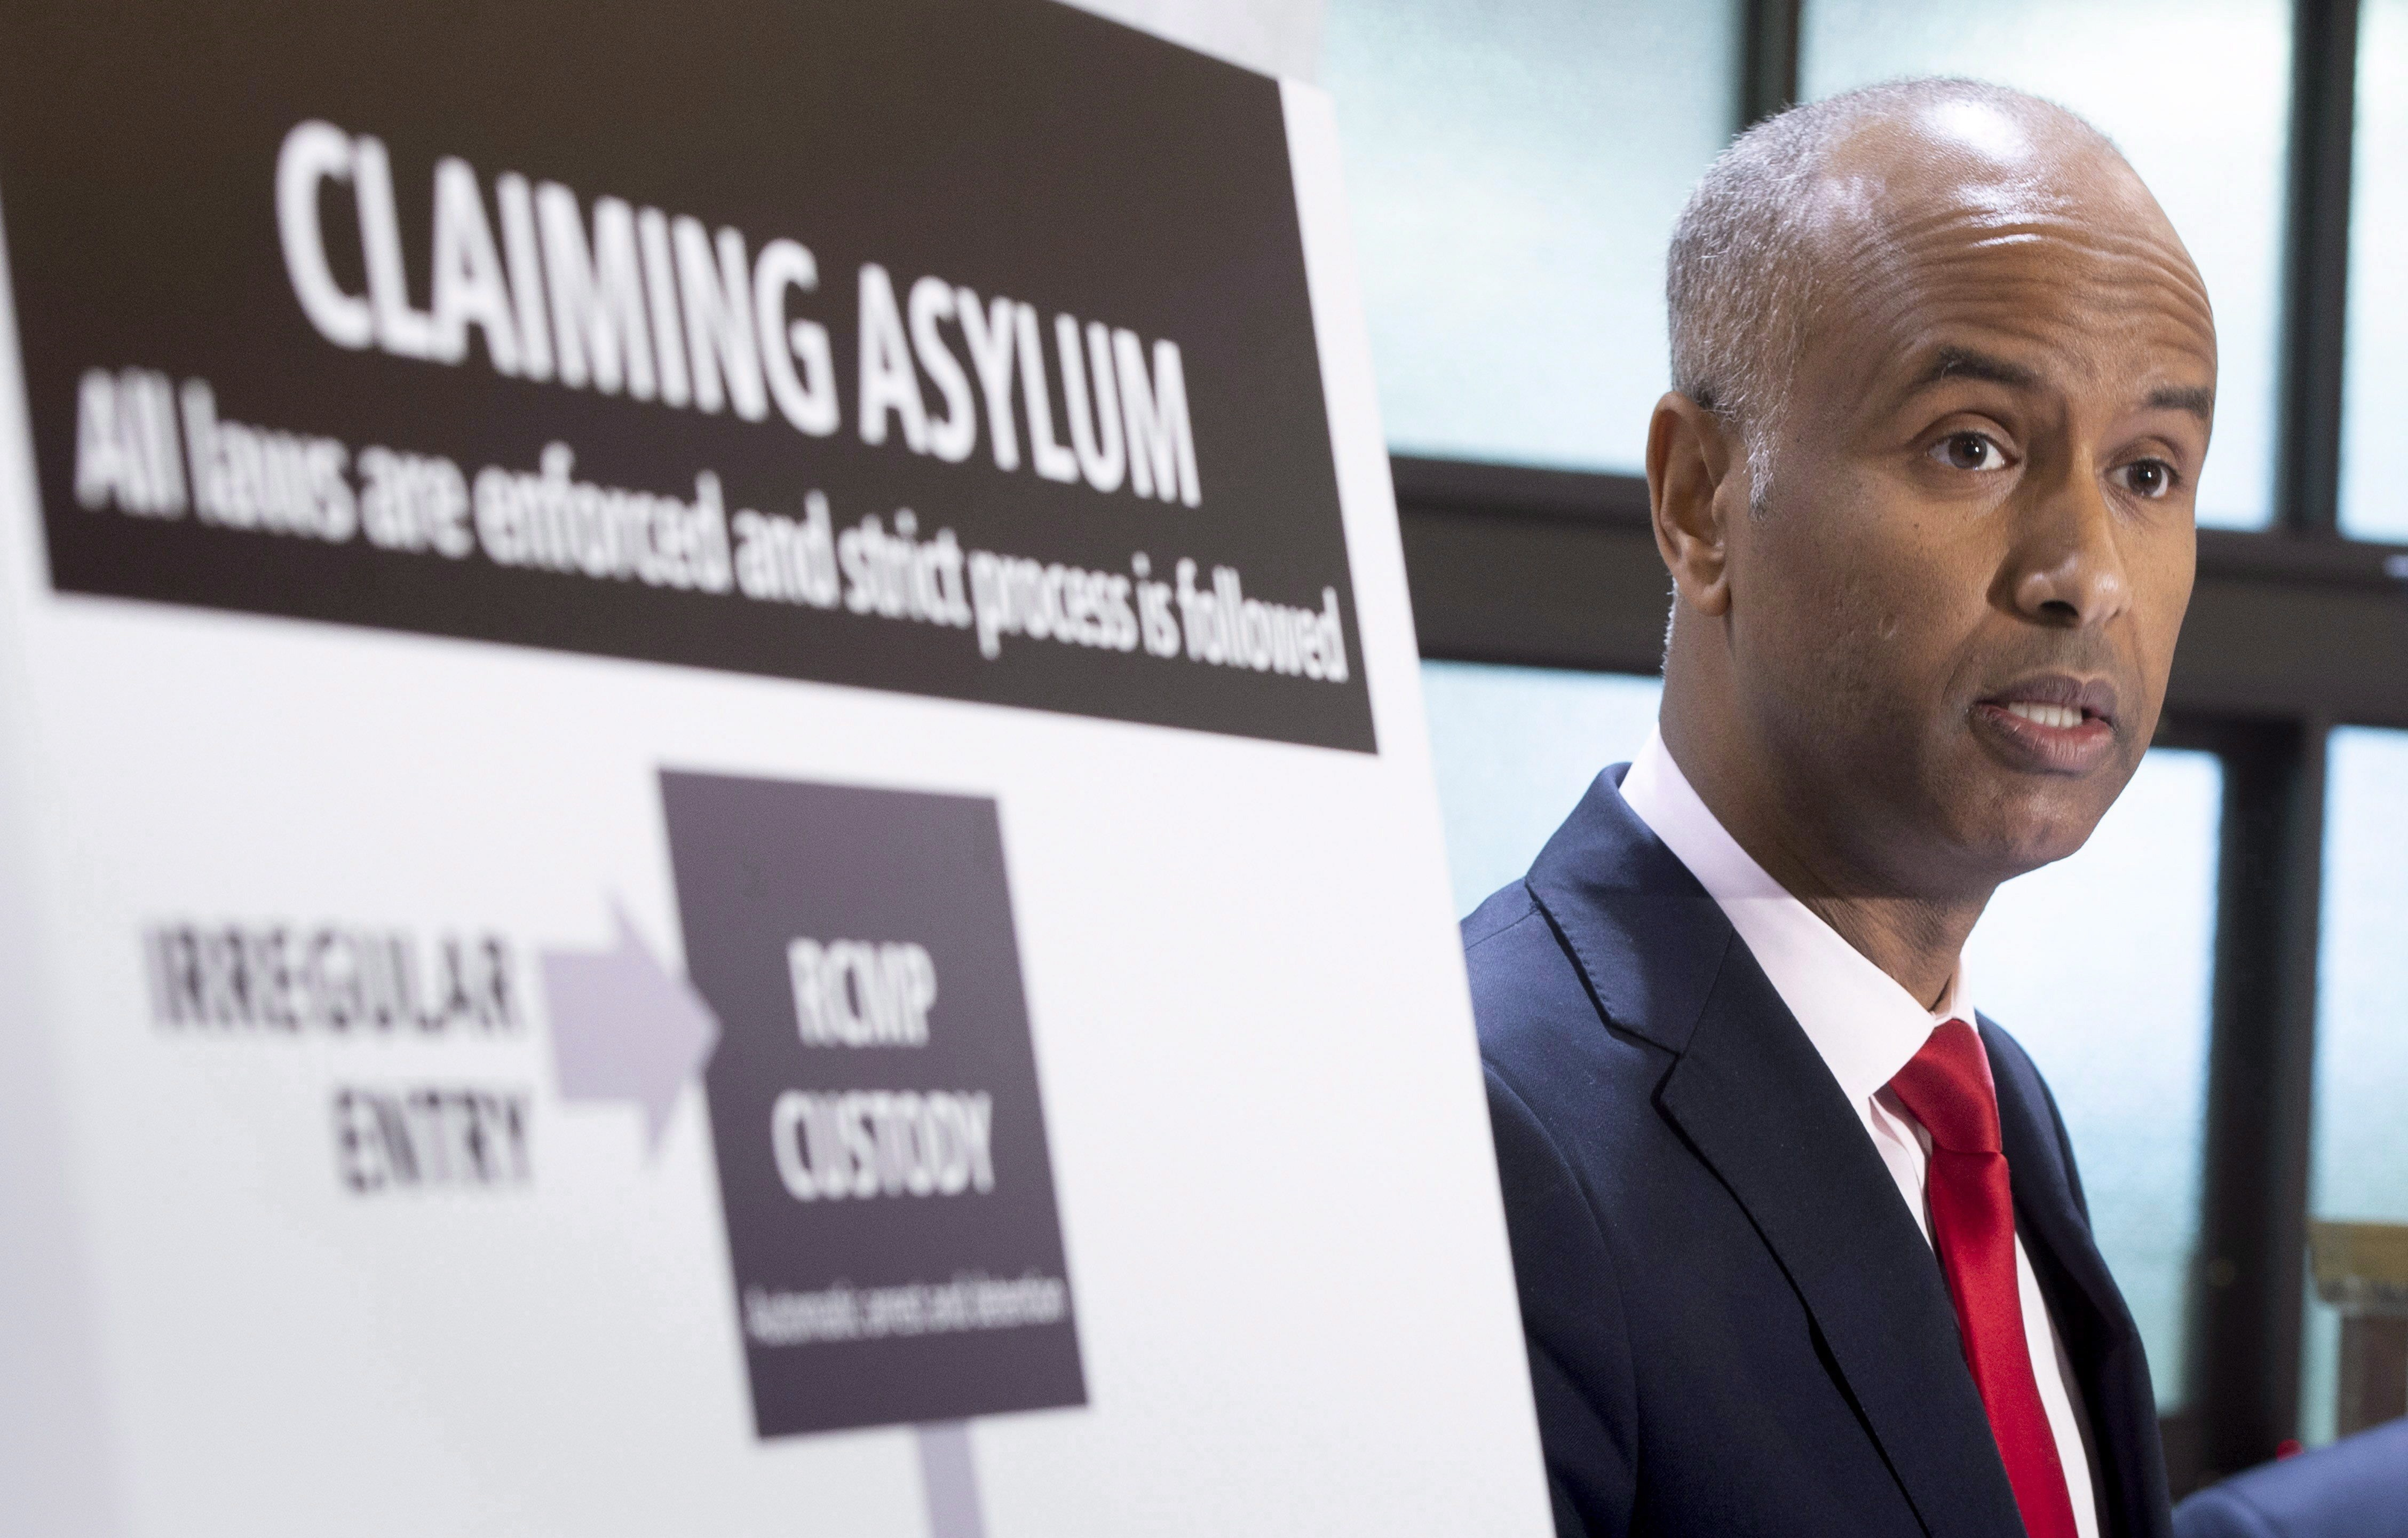 Canadian Immigration Minister Ahmed Hussen has tried to emphasize a balance between security and compassion when dealing with asylum seekers. (Paul Chiasson/Canadian Press)